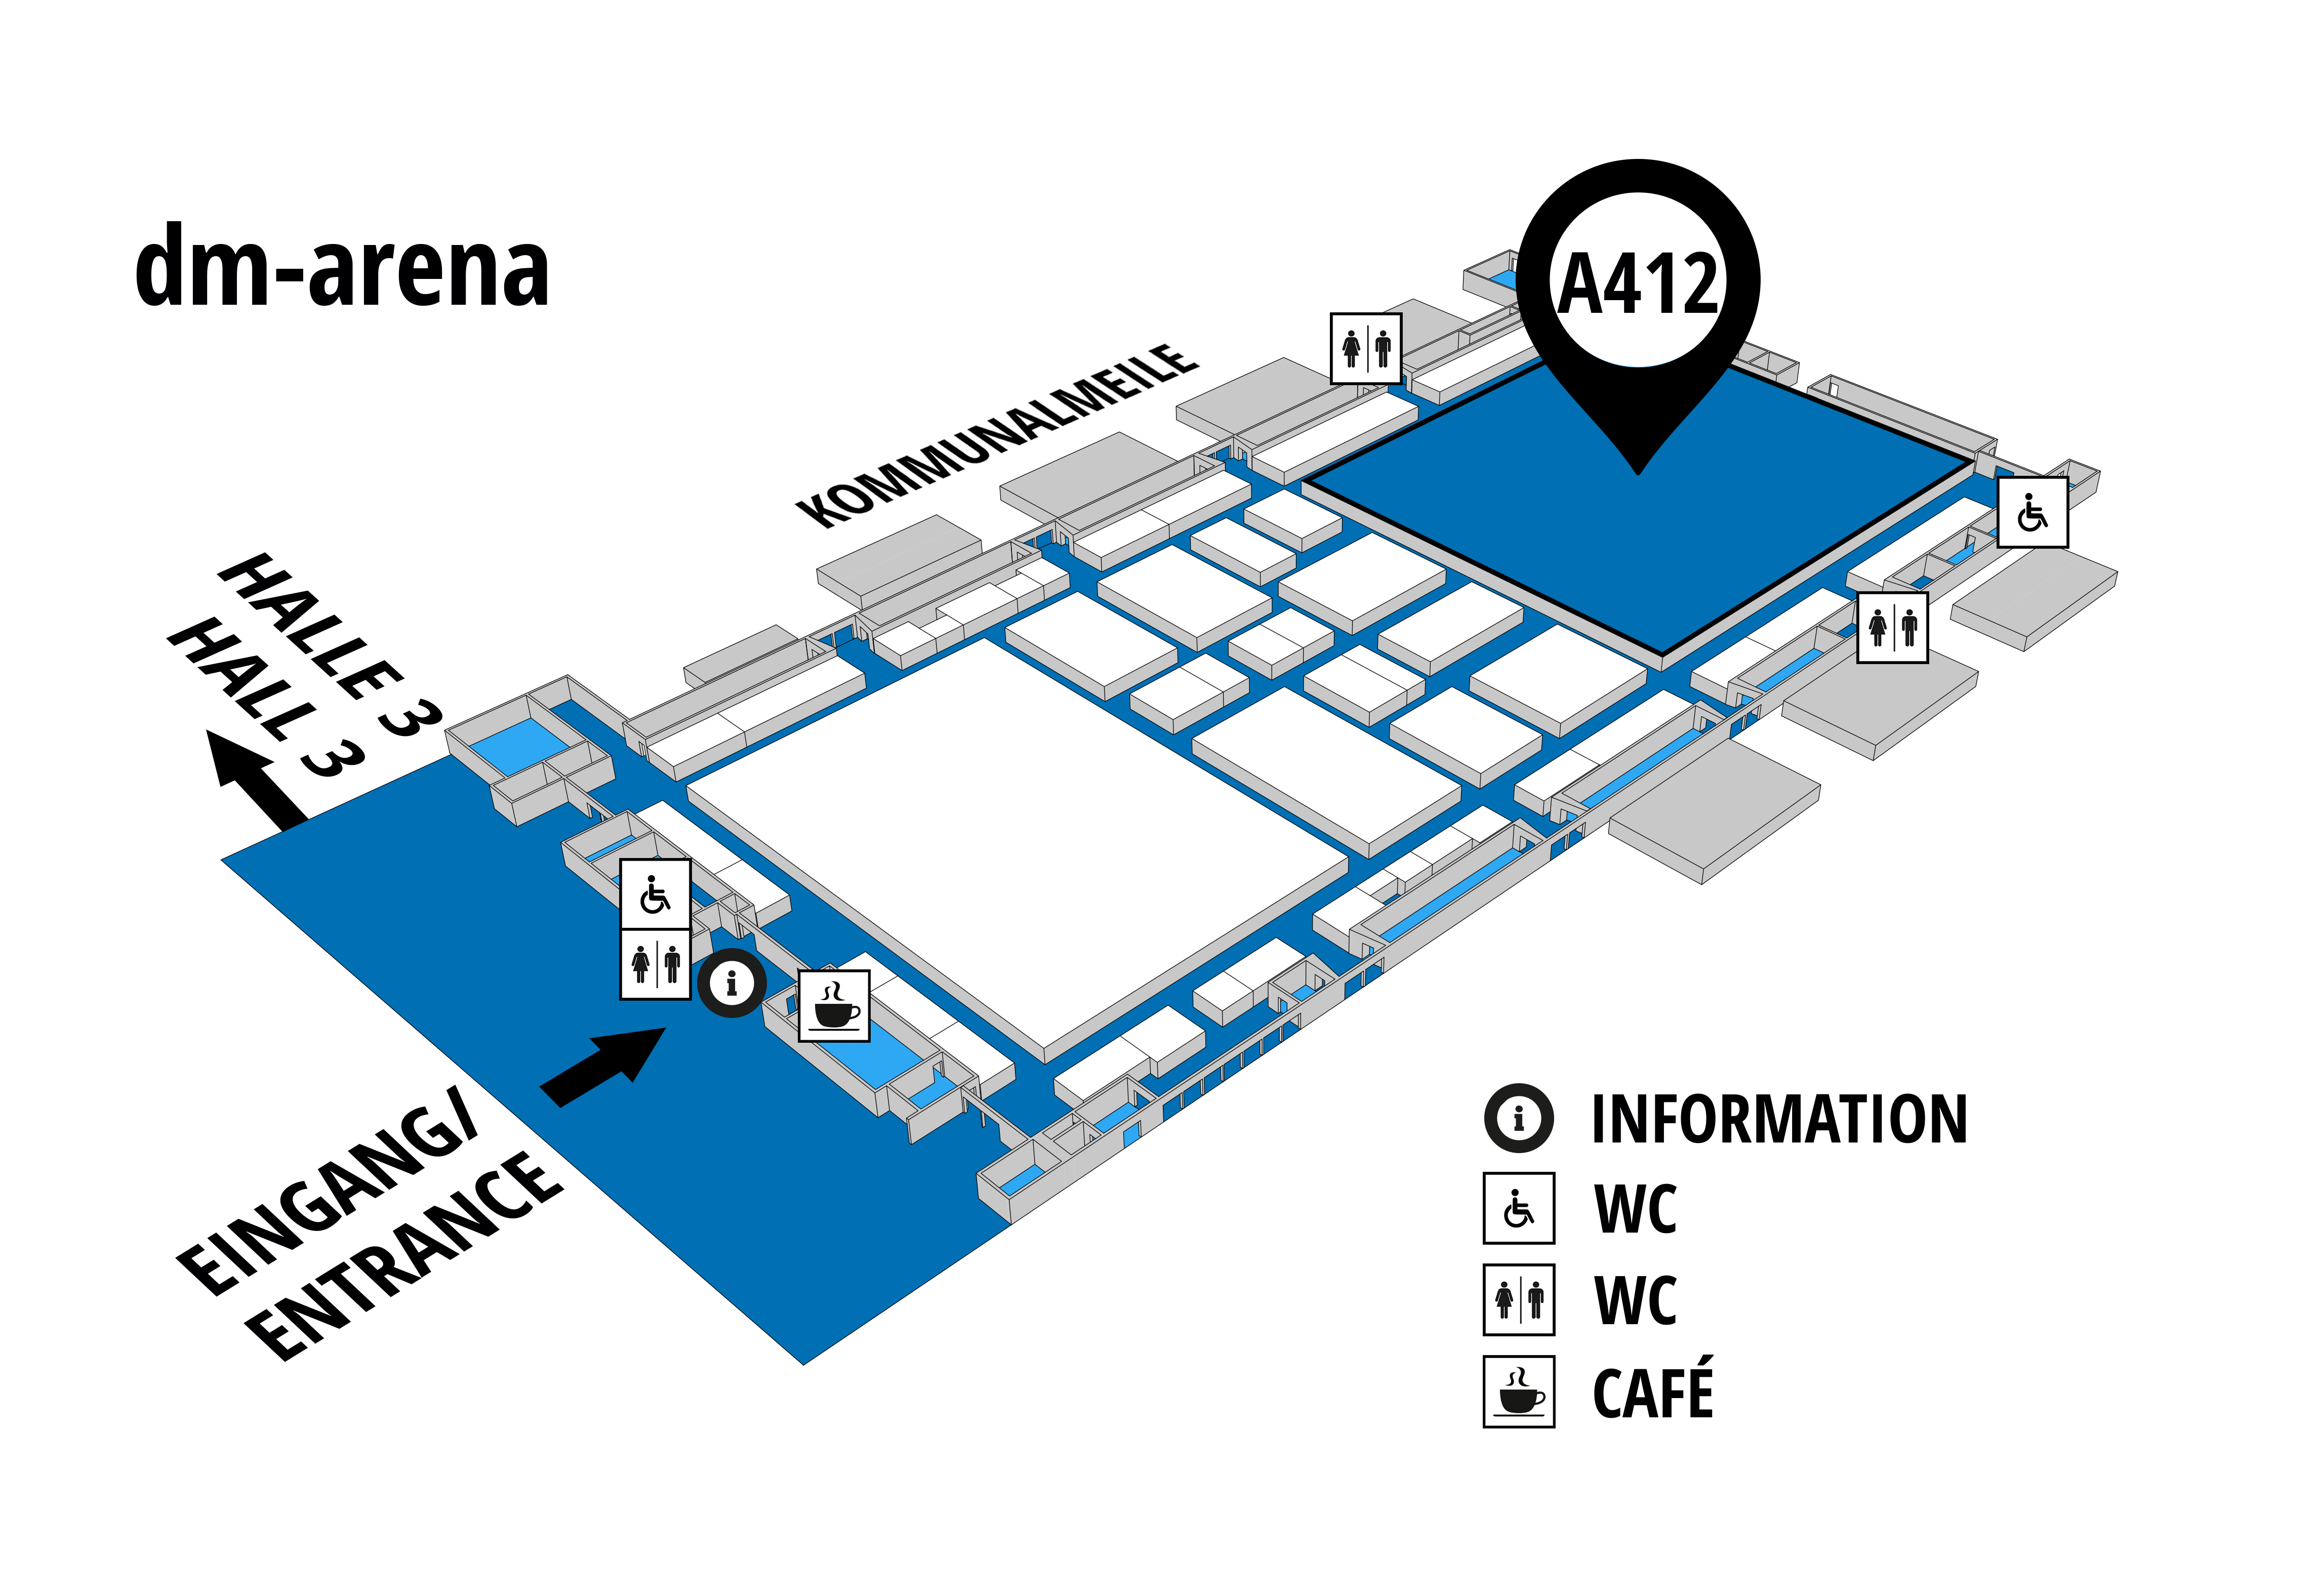 NUFAM 2019 - Trade fair for commercial vehicles hall map (dm-arena): stand A 412